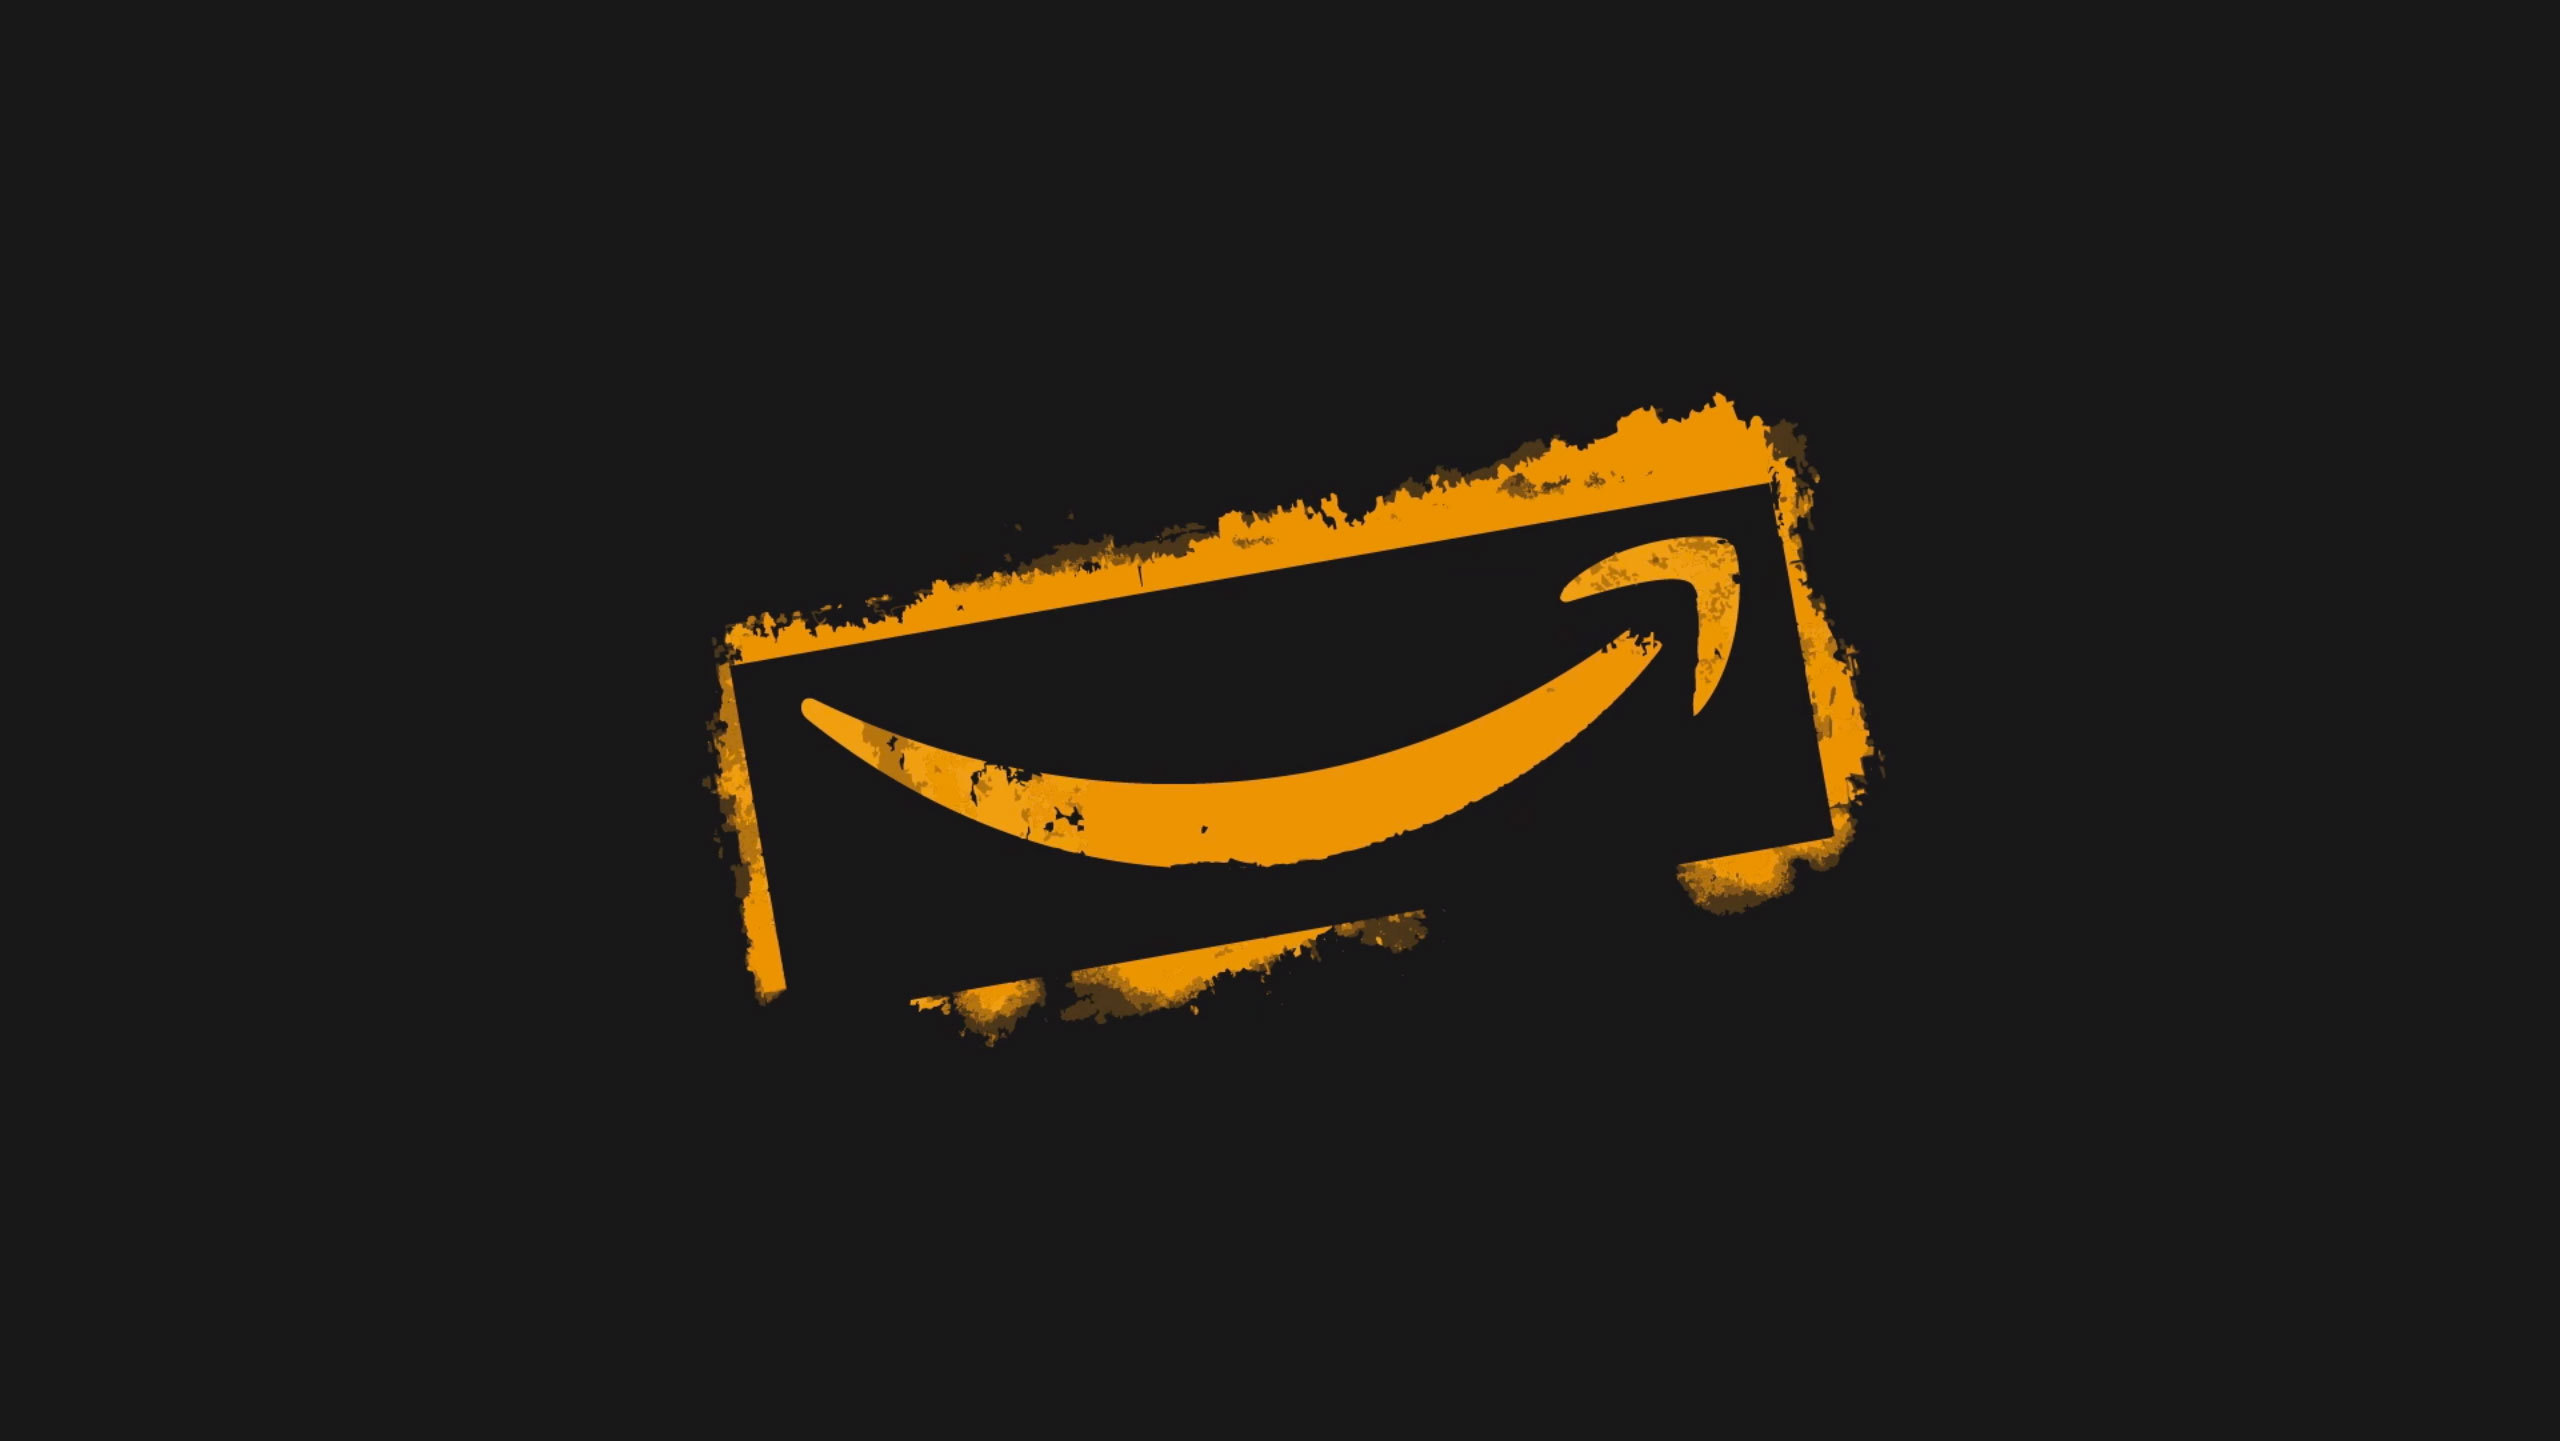 Amazon wallpapers images photos pictures backgrounds for Amazon wallpaper